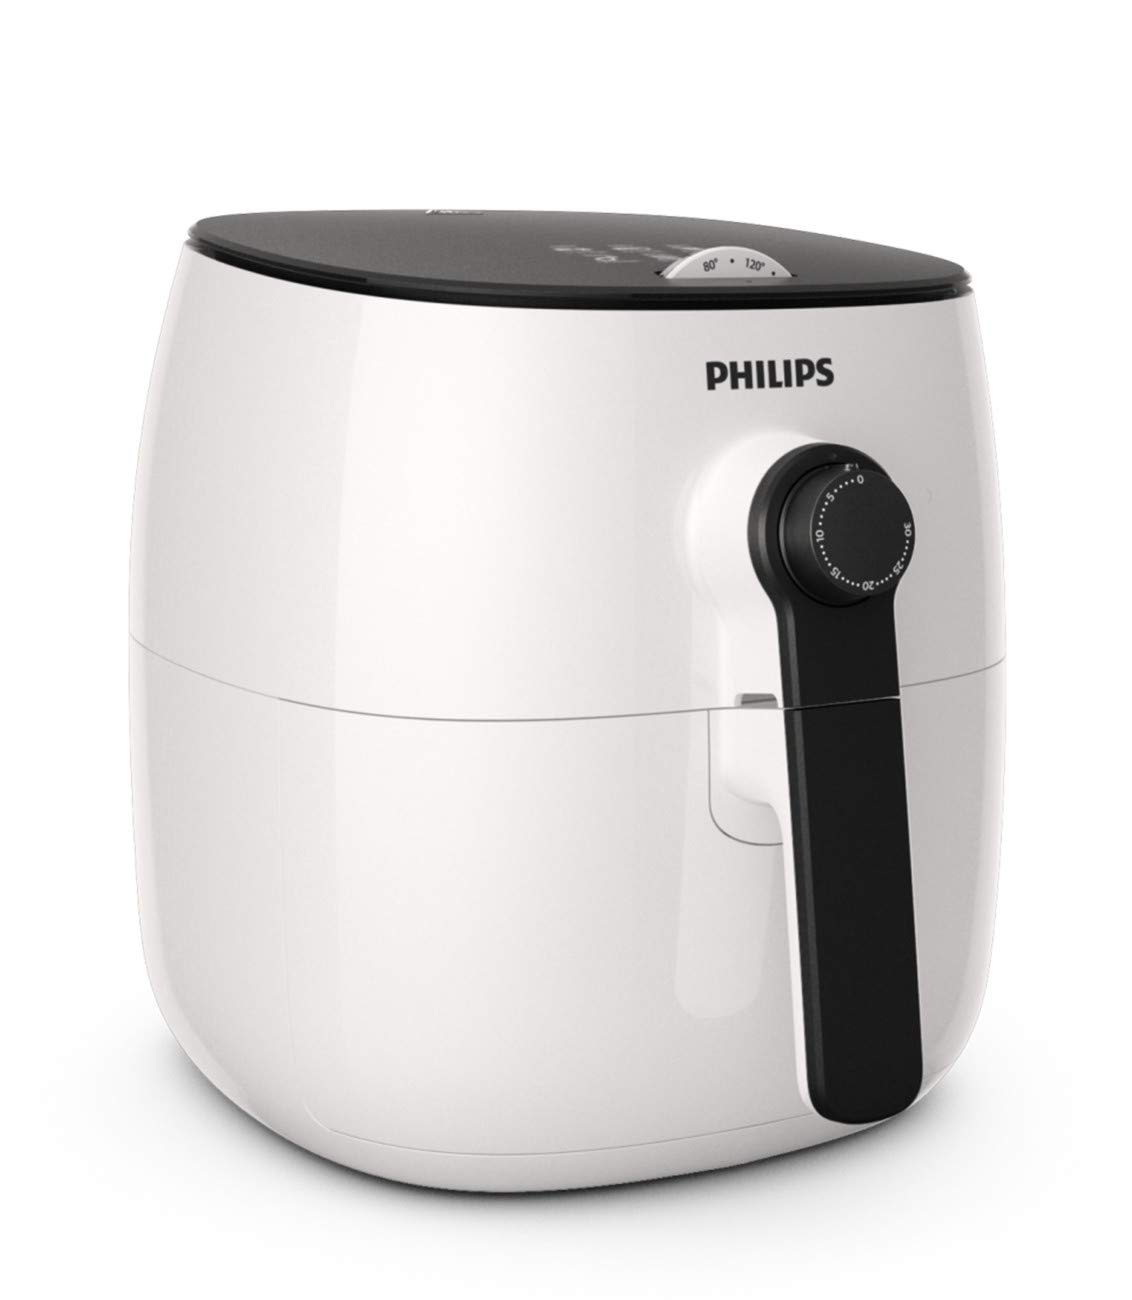 Philips Kitchen HD9621/06 Philips Airfryer, Viva Turbo Star, White, Black Handle